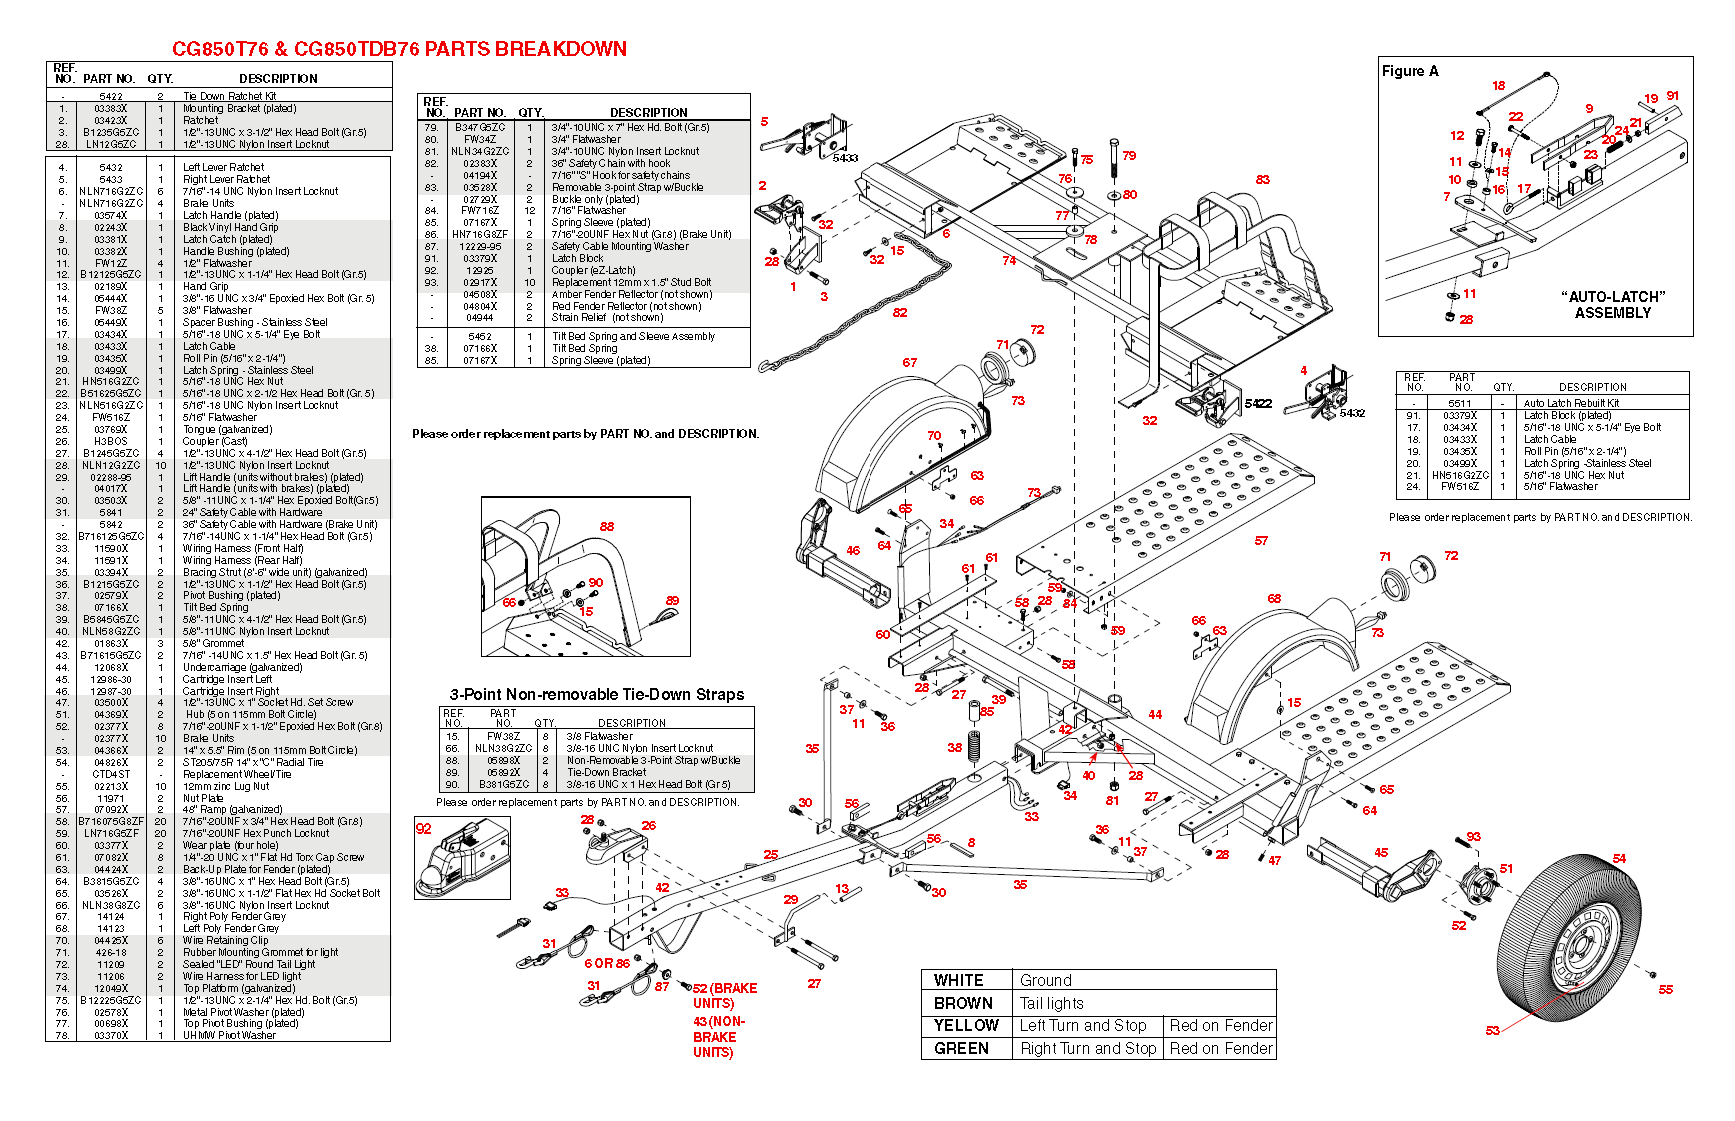 tow wiring diagram for cub cadet zero turn mower dolly parts diagrams